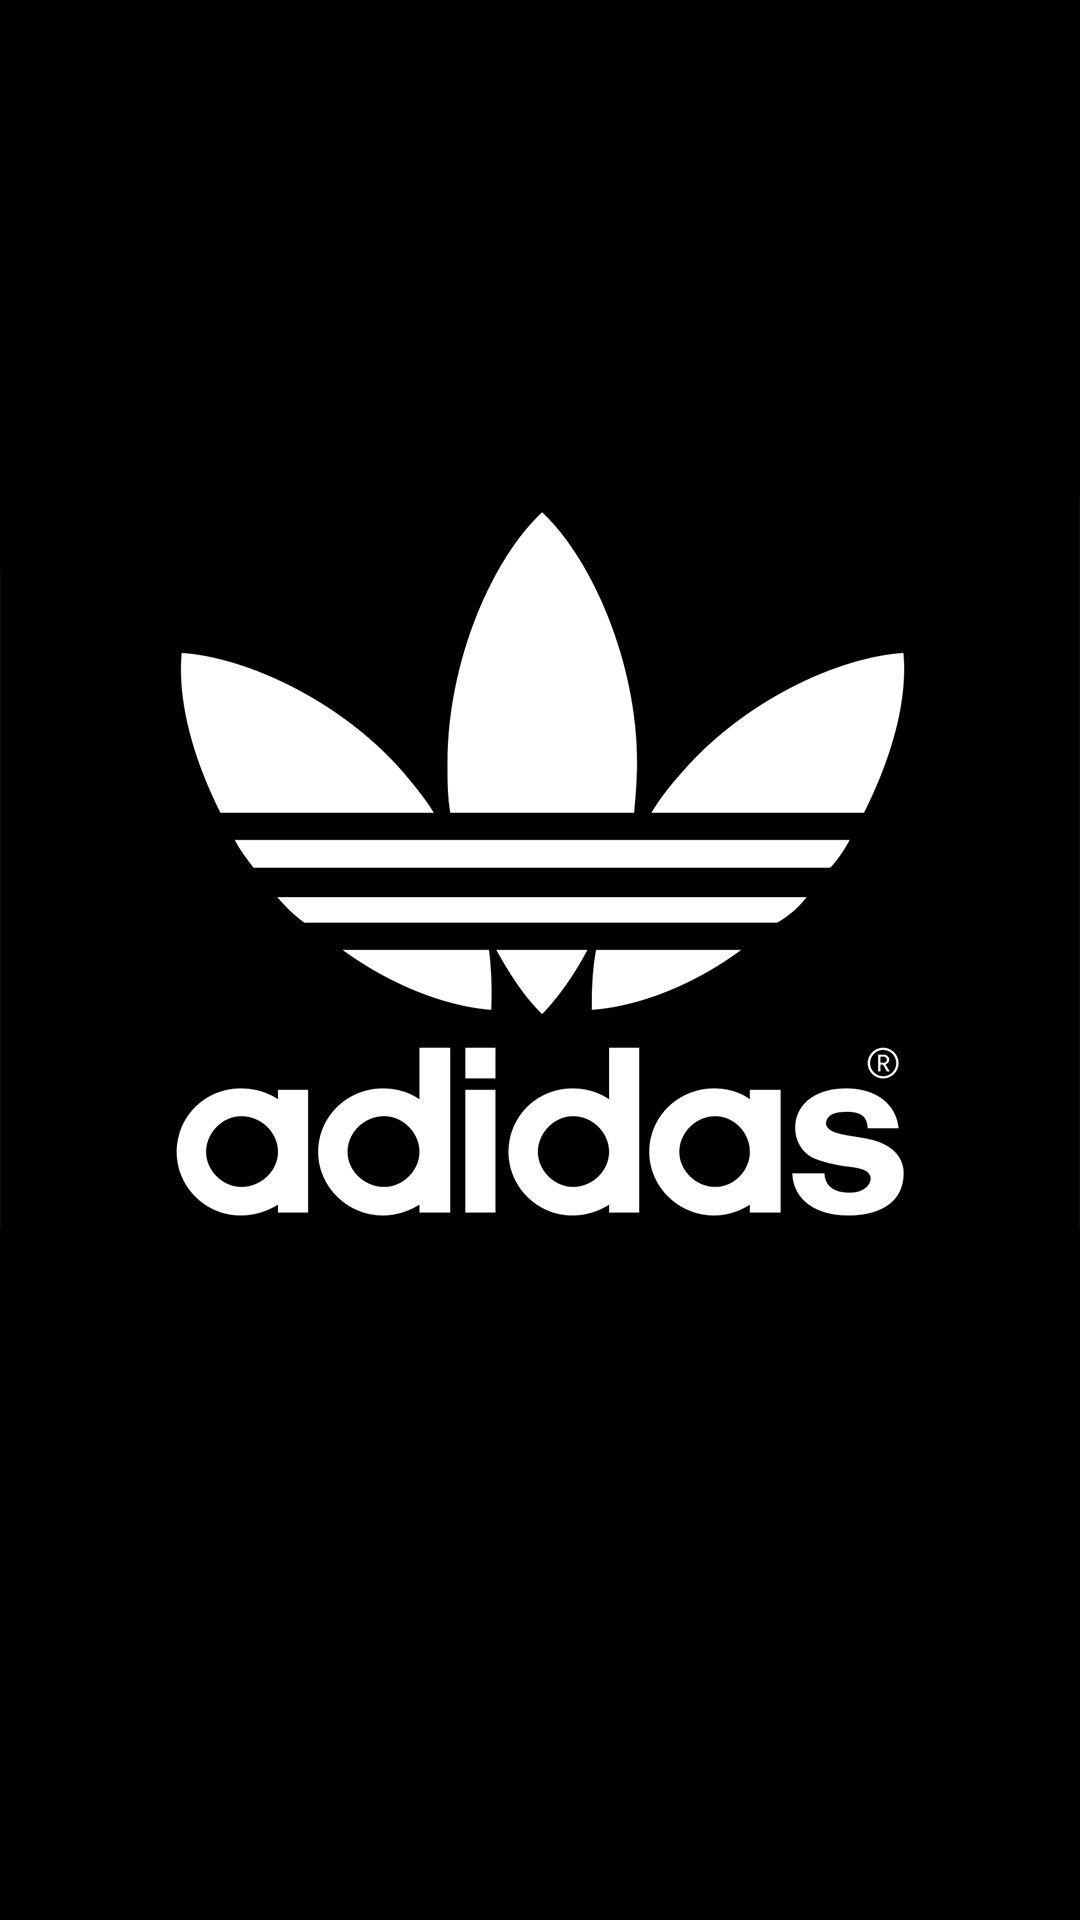 Inspirational Adidas Wallpaper Gif In 2020